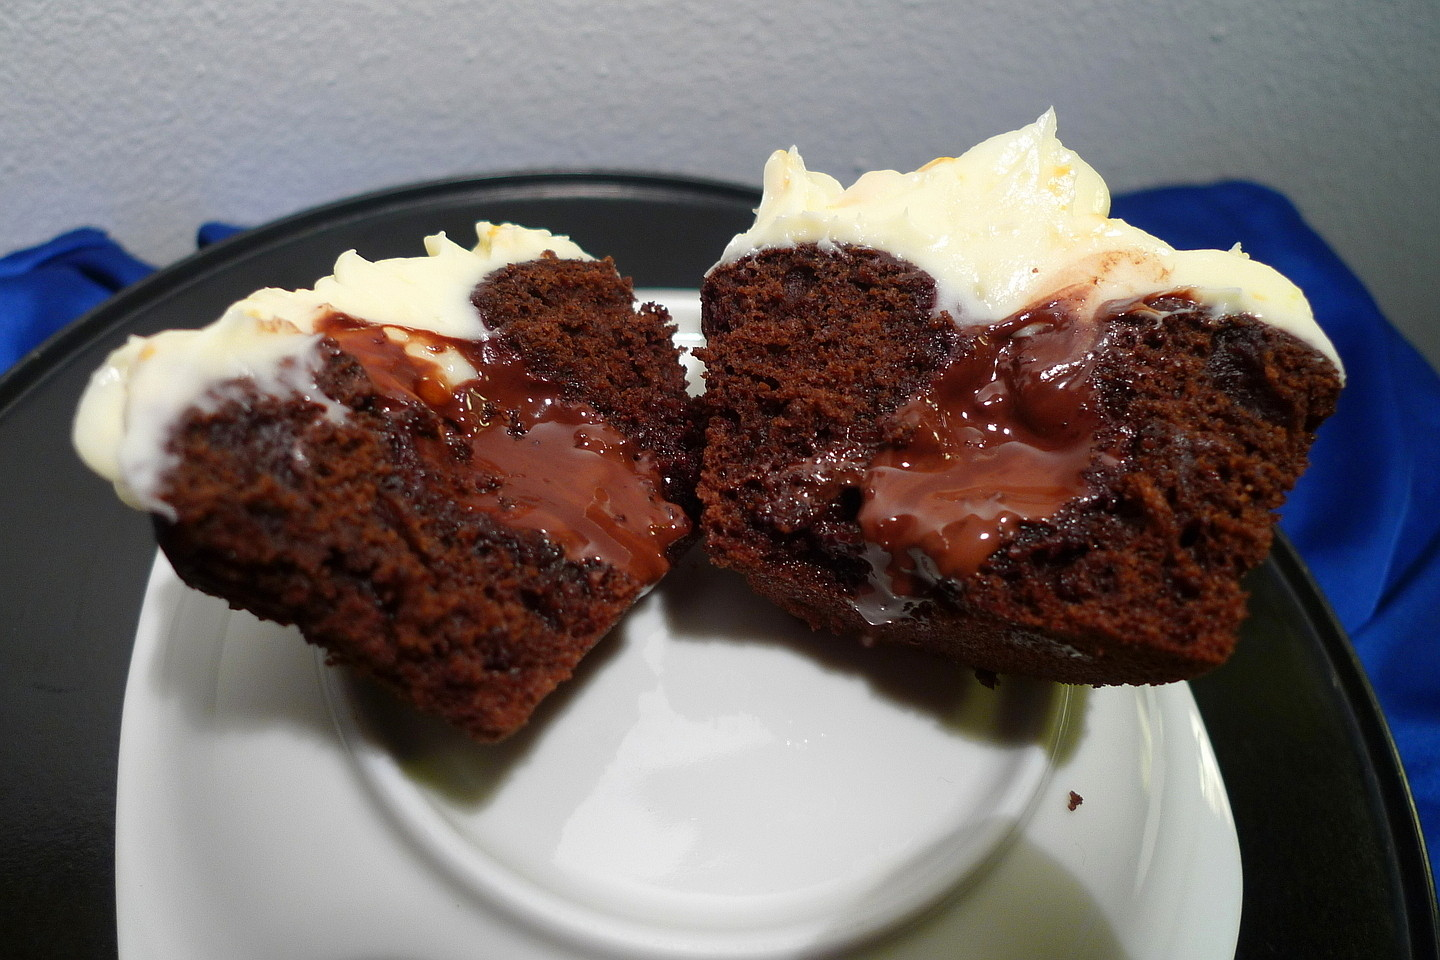 ... Chocolate Truffle Stuffed Cupcakes with Orange Cream Cheese Frosting